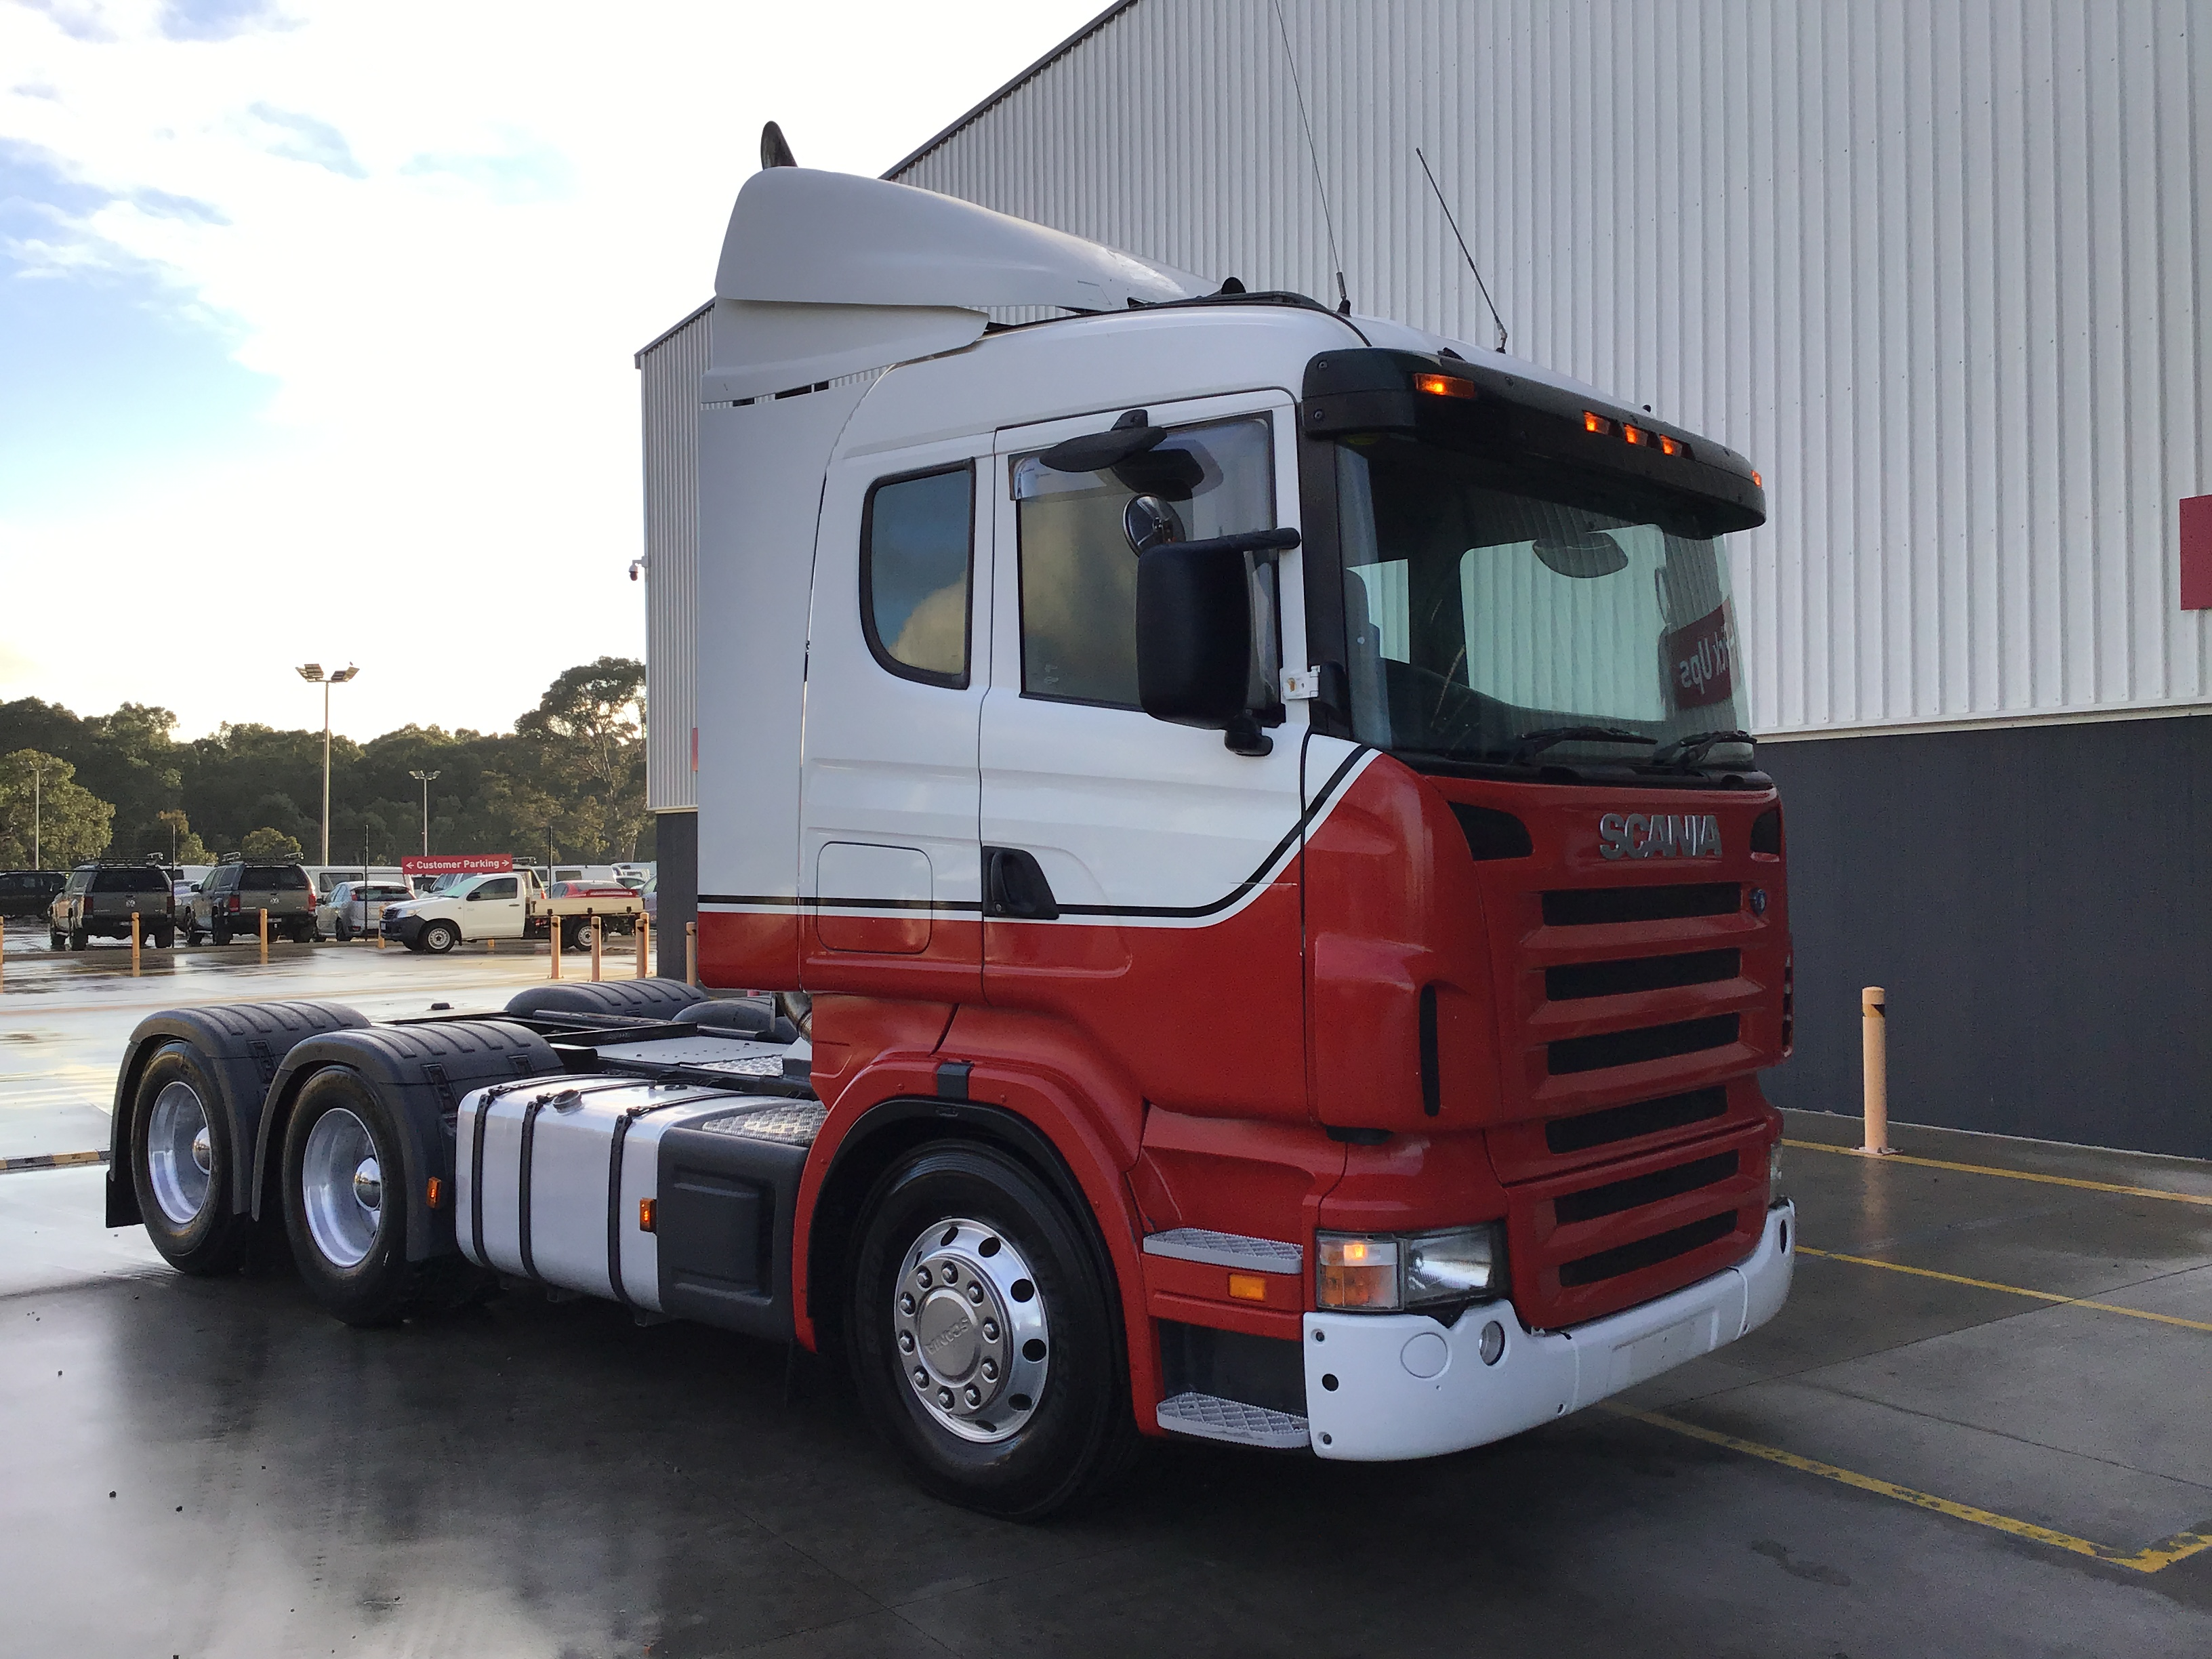 2004 Scania P420 6 x 4 Prime Mover Truck